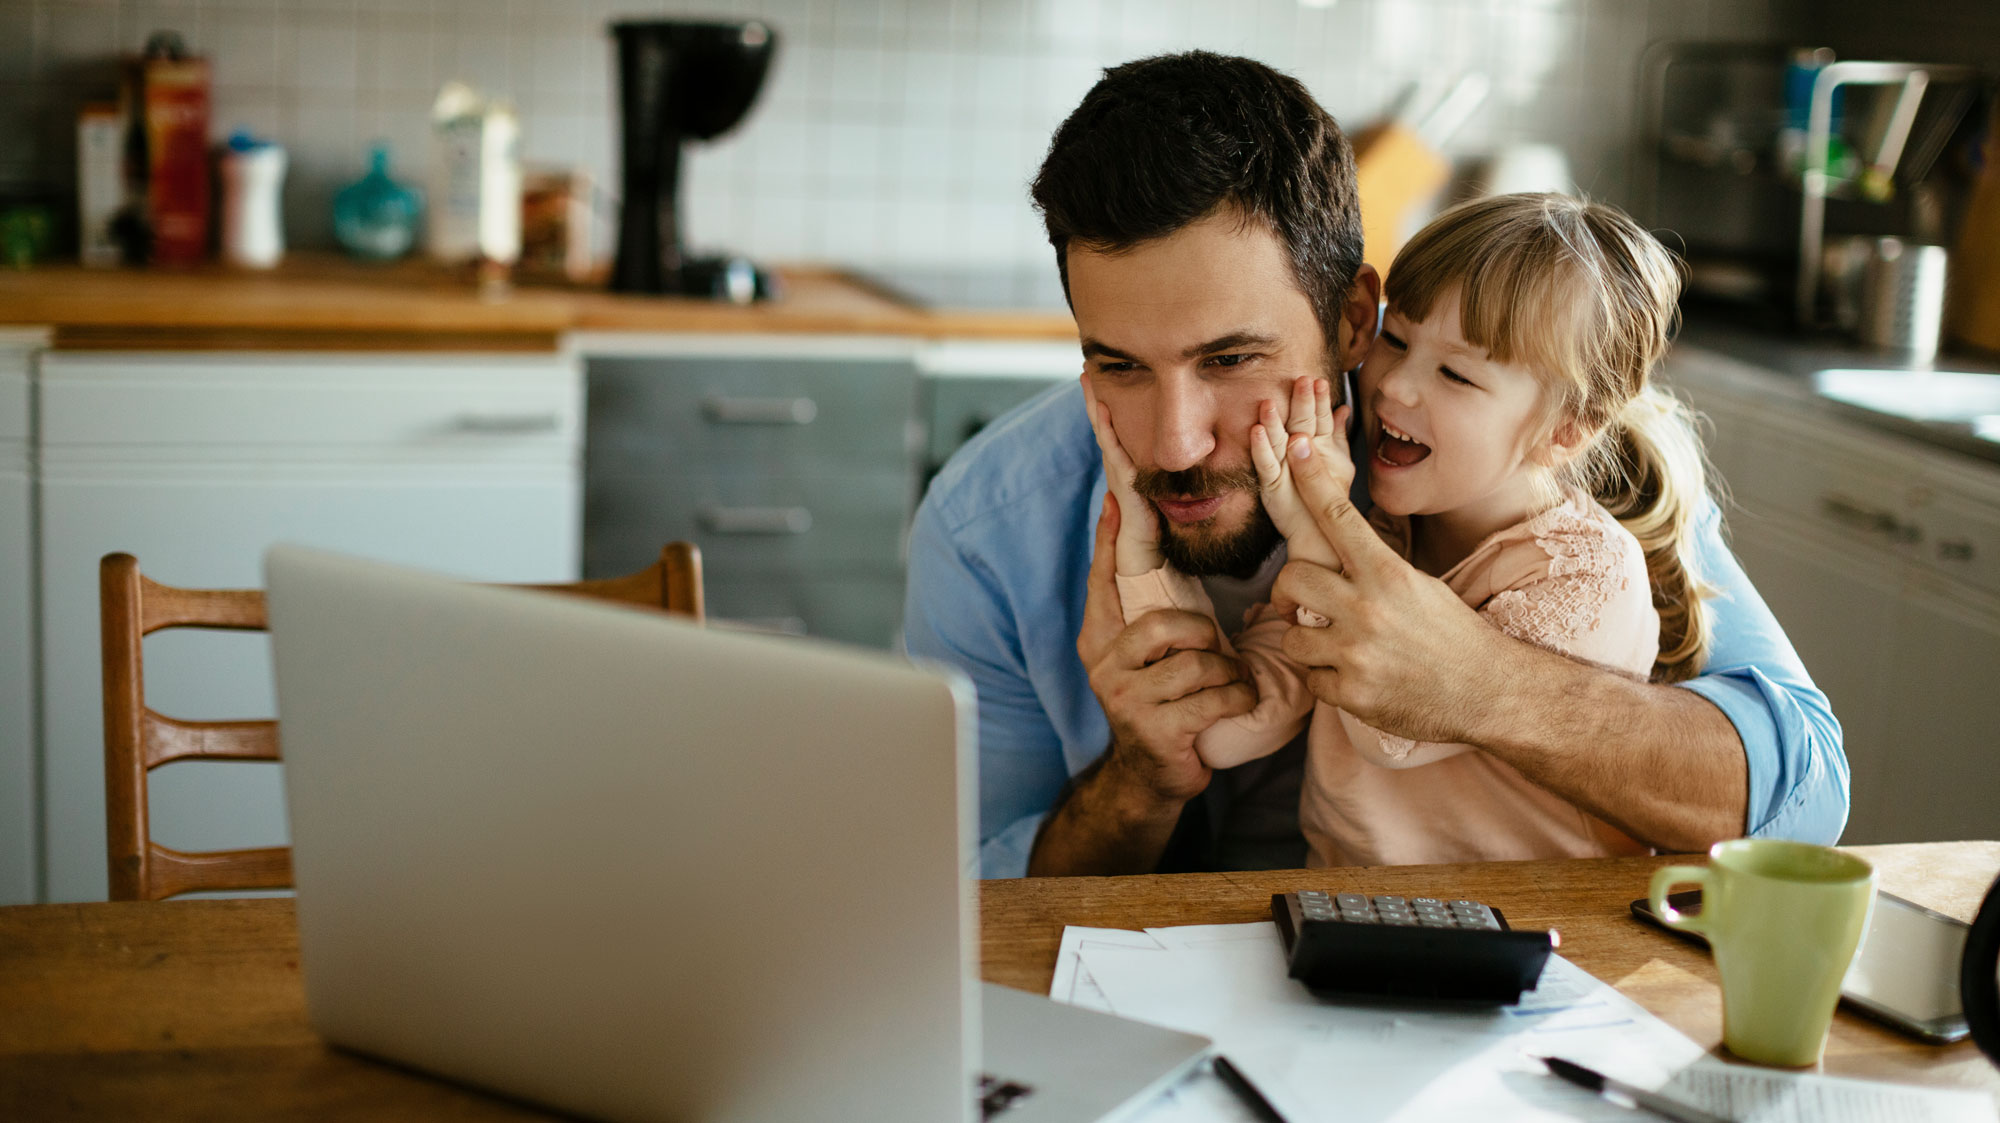 Father sitting looking at computer with daughter on lap squishing his cheeks